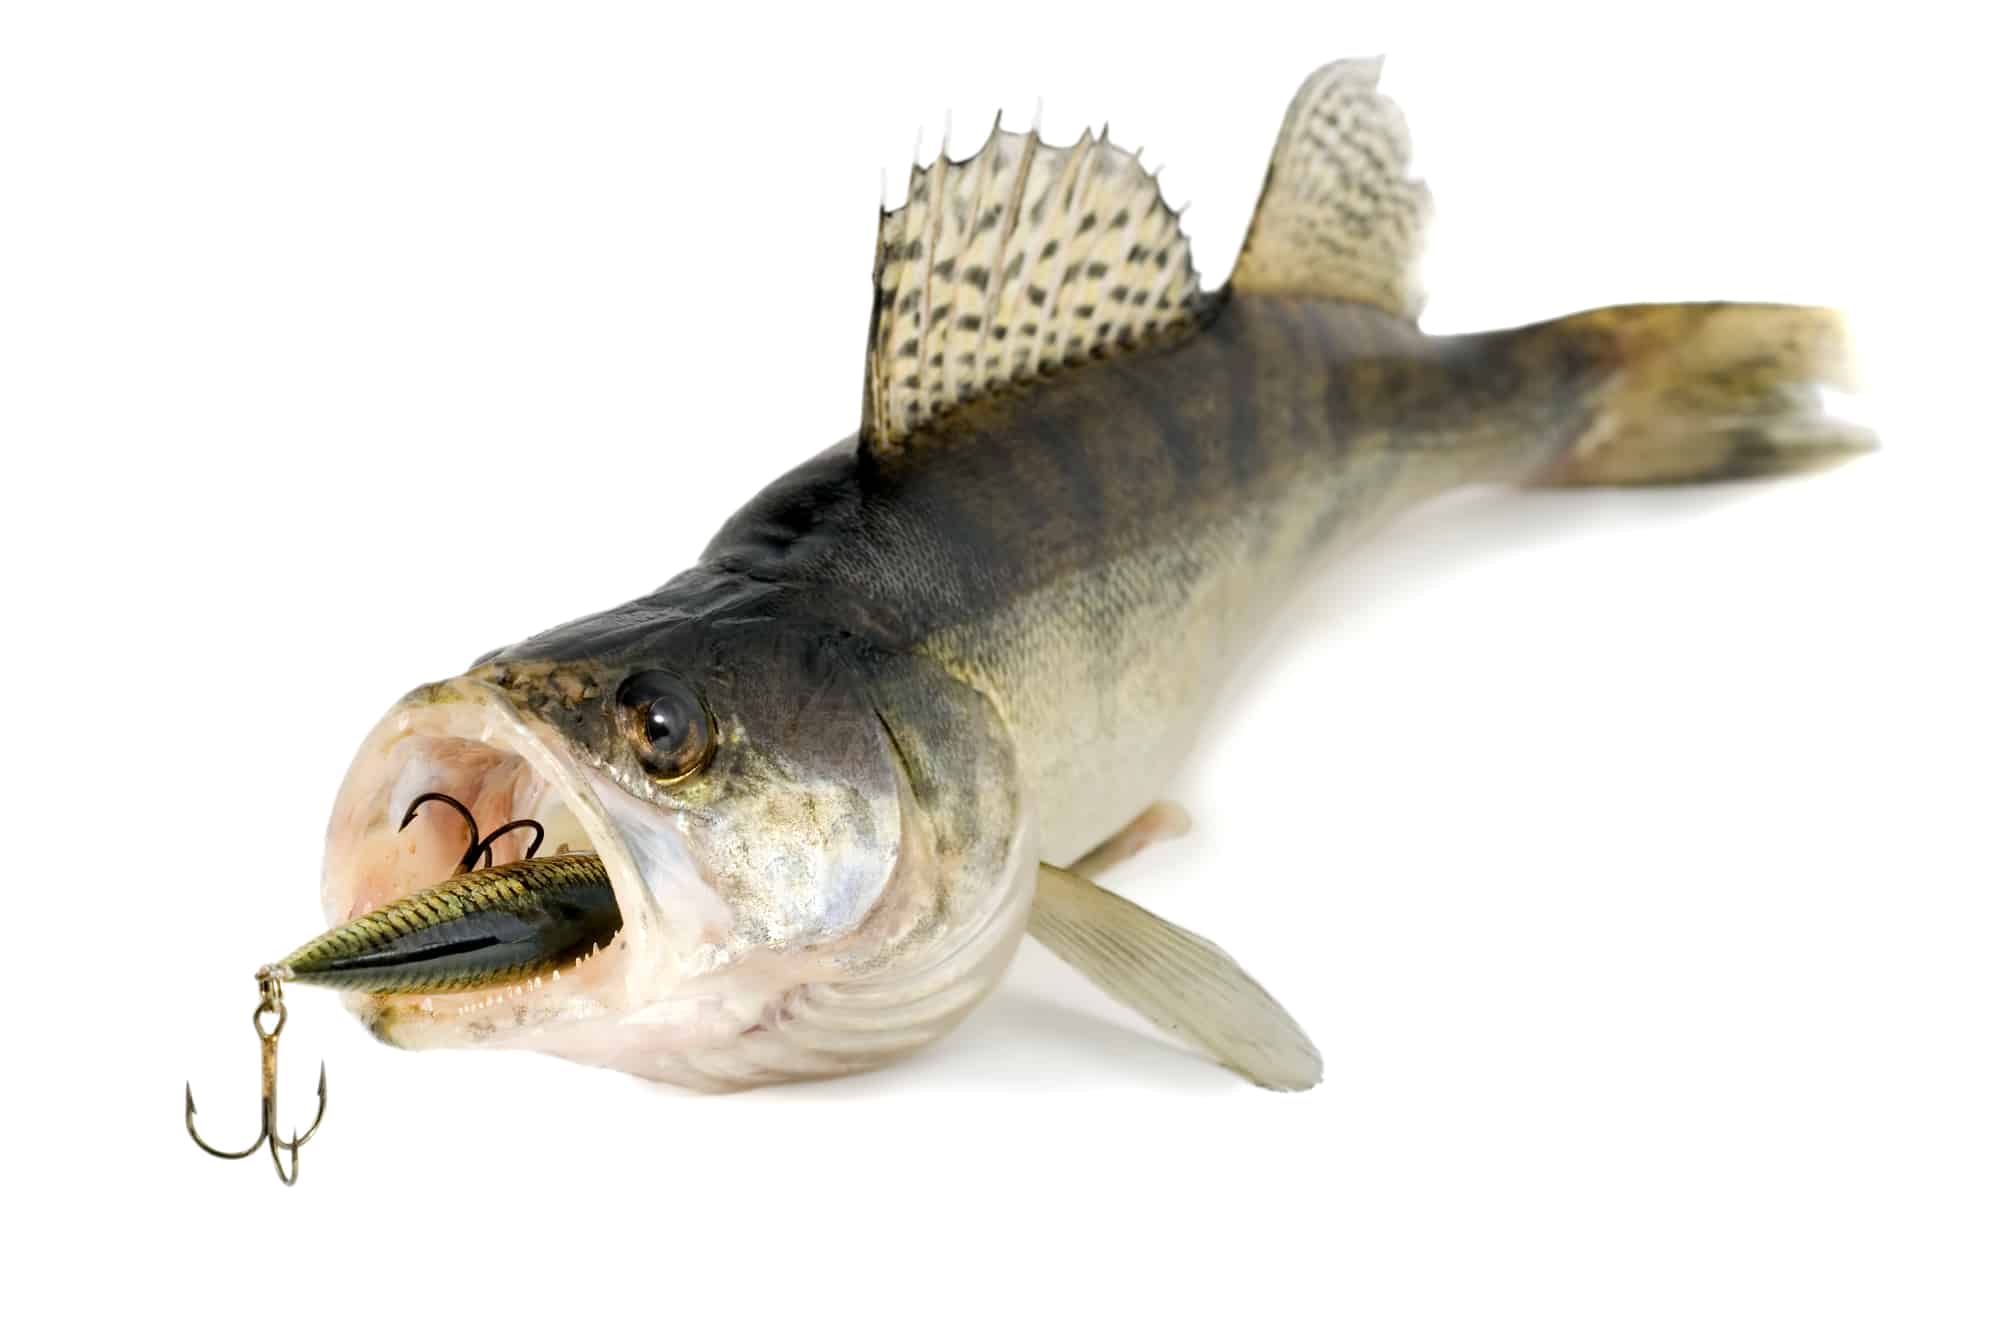 Best Walleye Lures and Jigs For Fishing - Buying Guide and